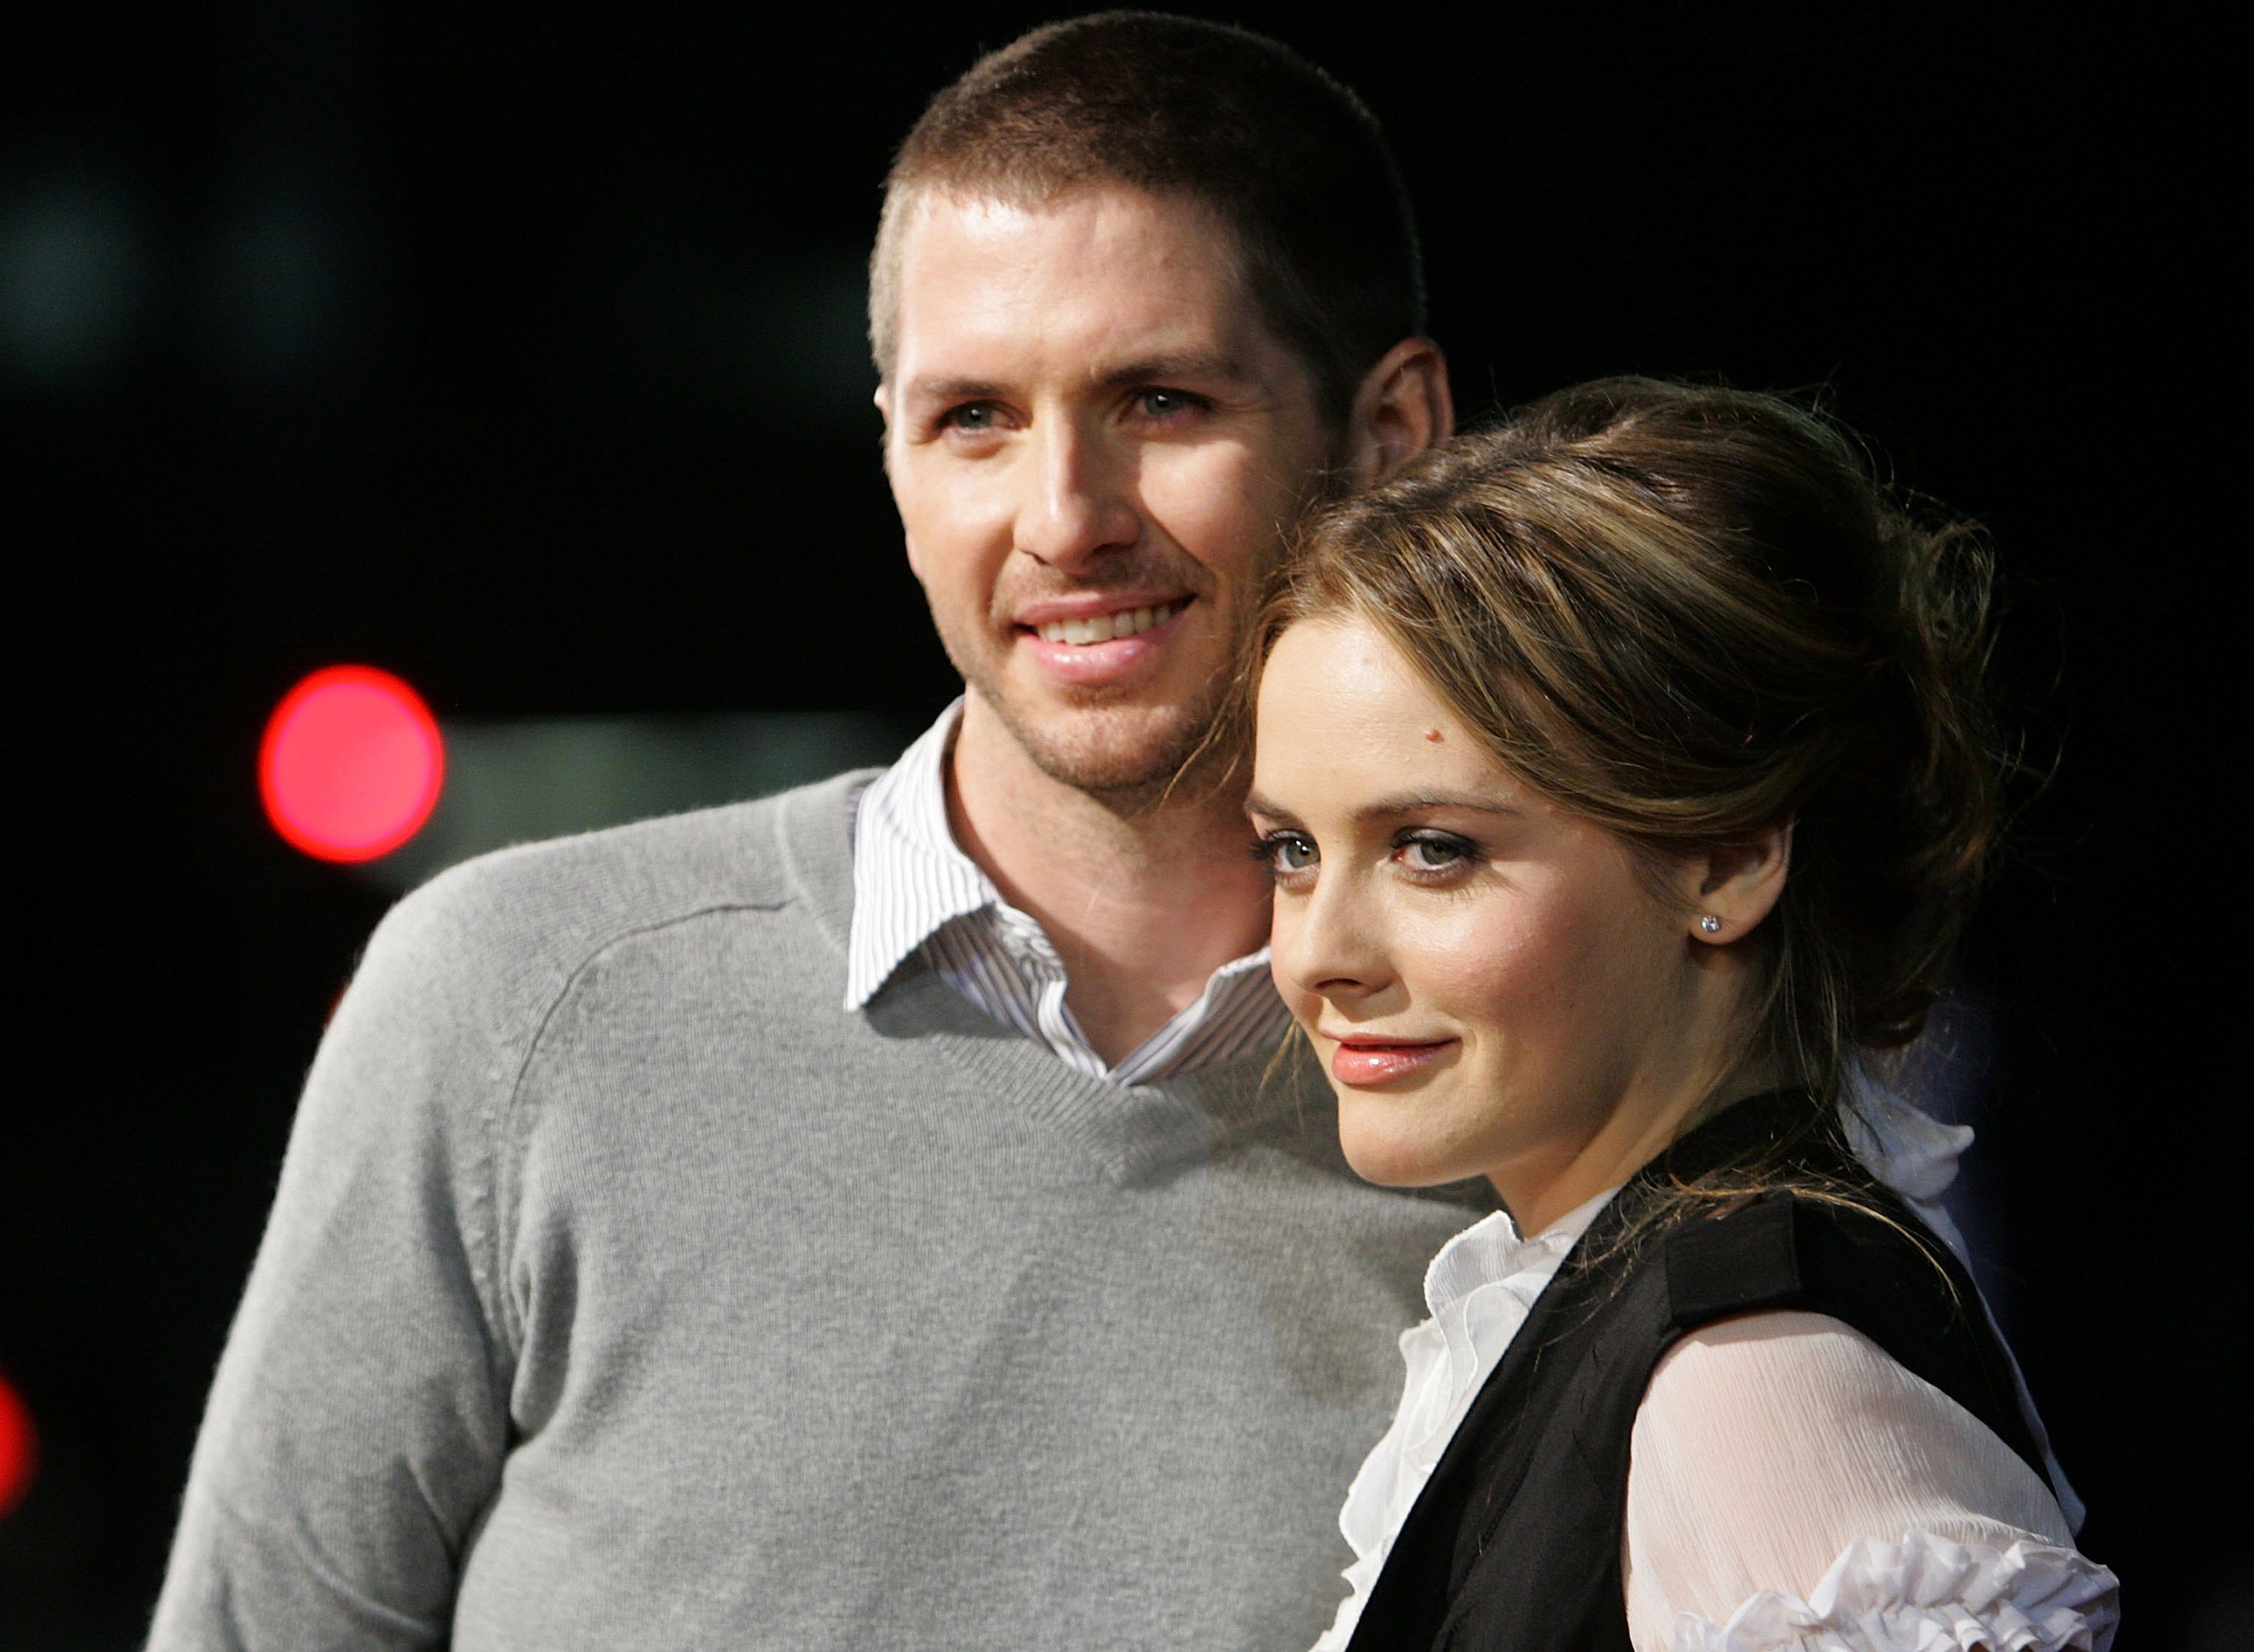 Alicia Silverstone, husband Christopher Jarecki separate after 20 years together